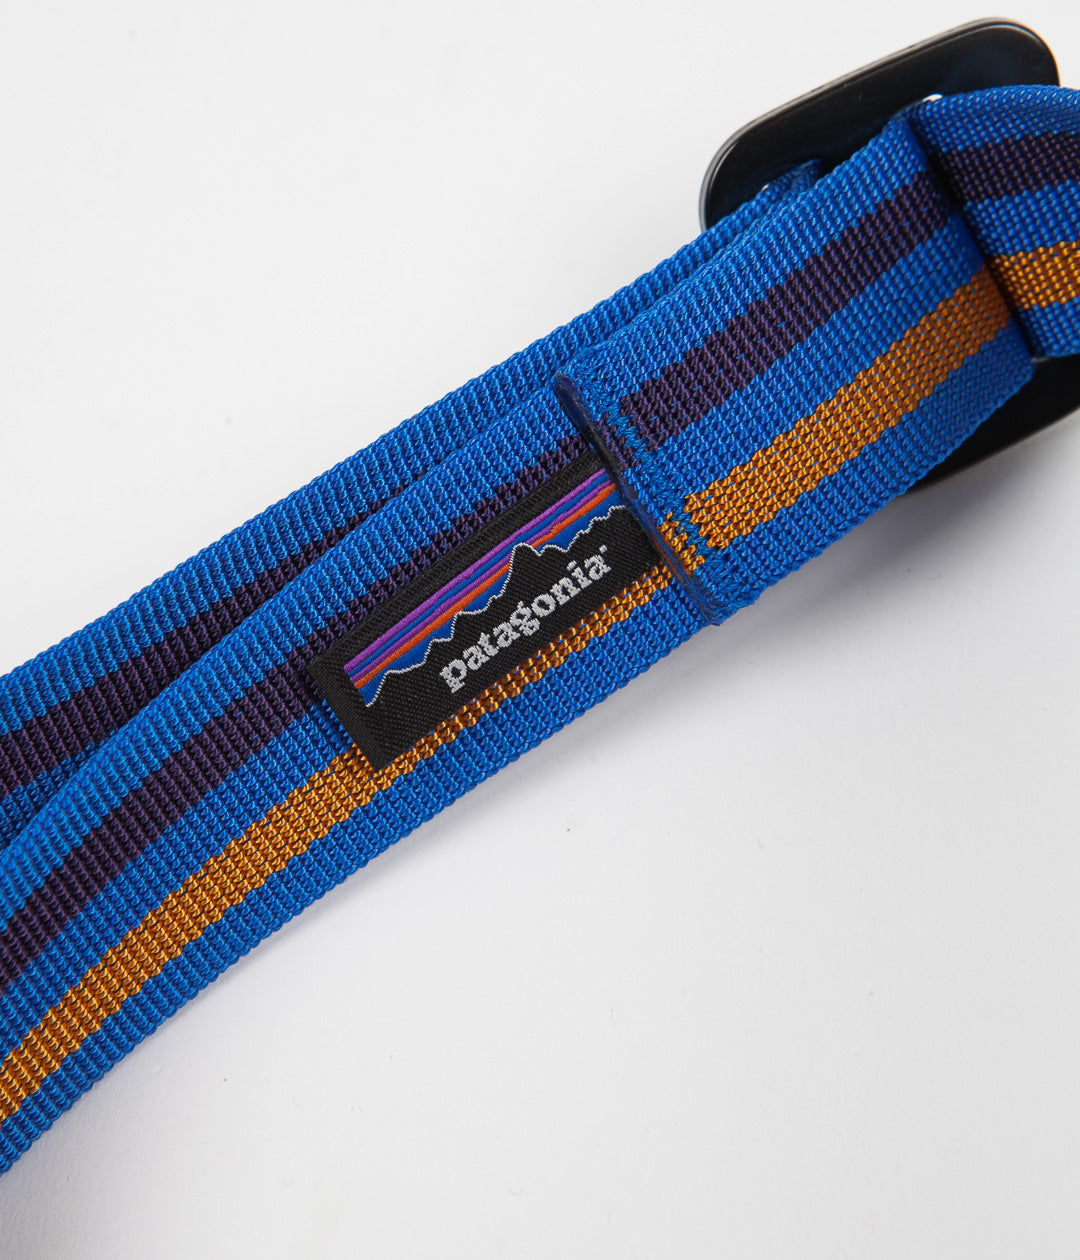 Patagonia Friction Belt - Fitzroy Stripe: Andes Blue